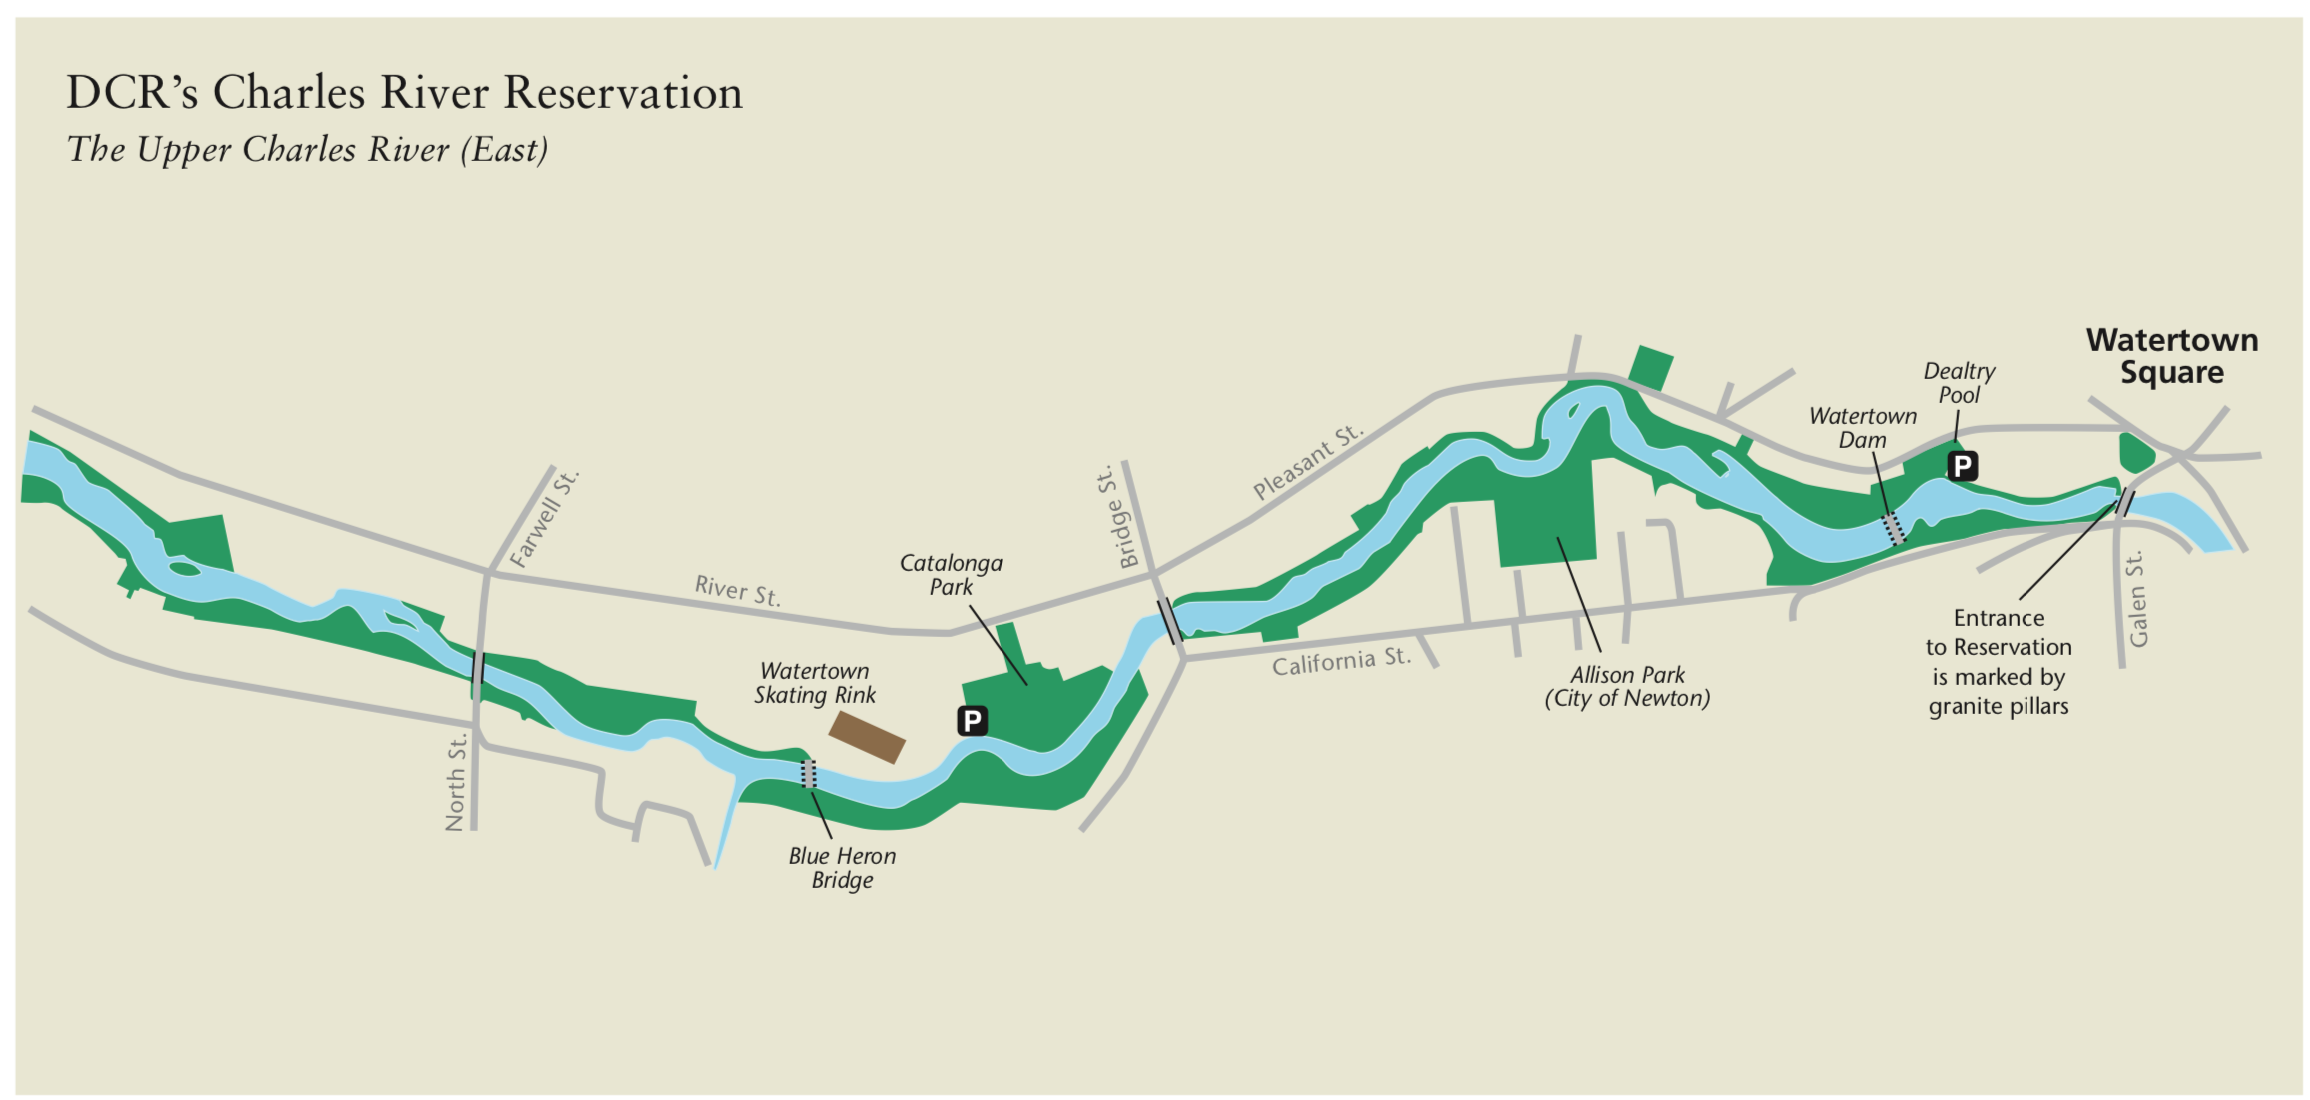 Upper Charles River East DCR map_Square to Waltham.png